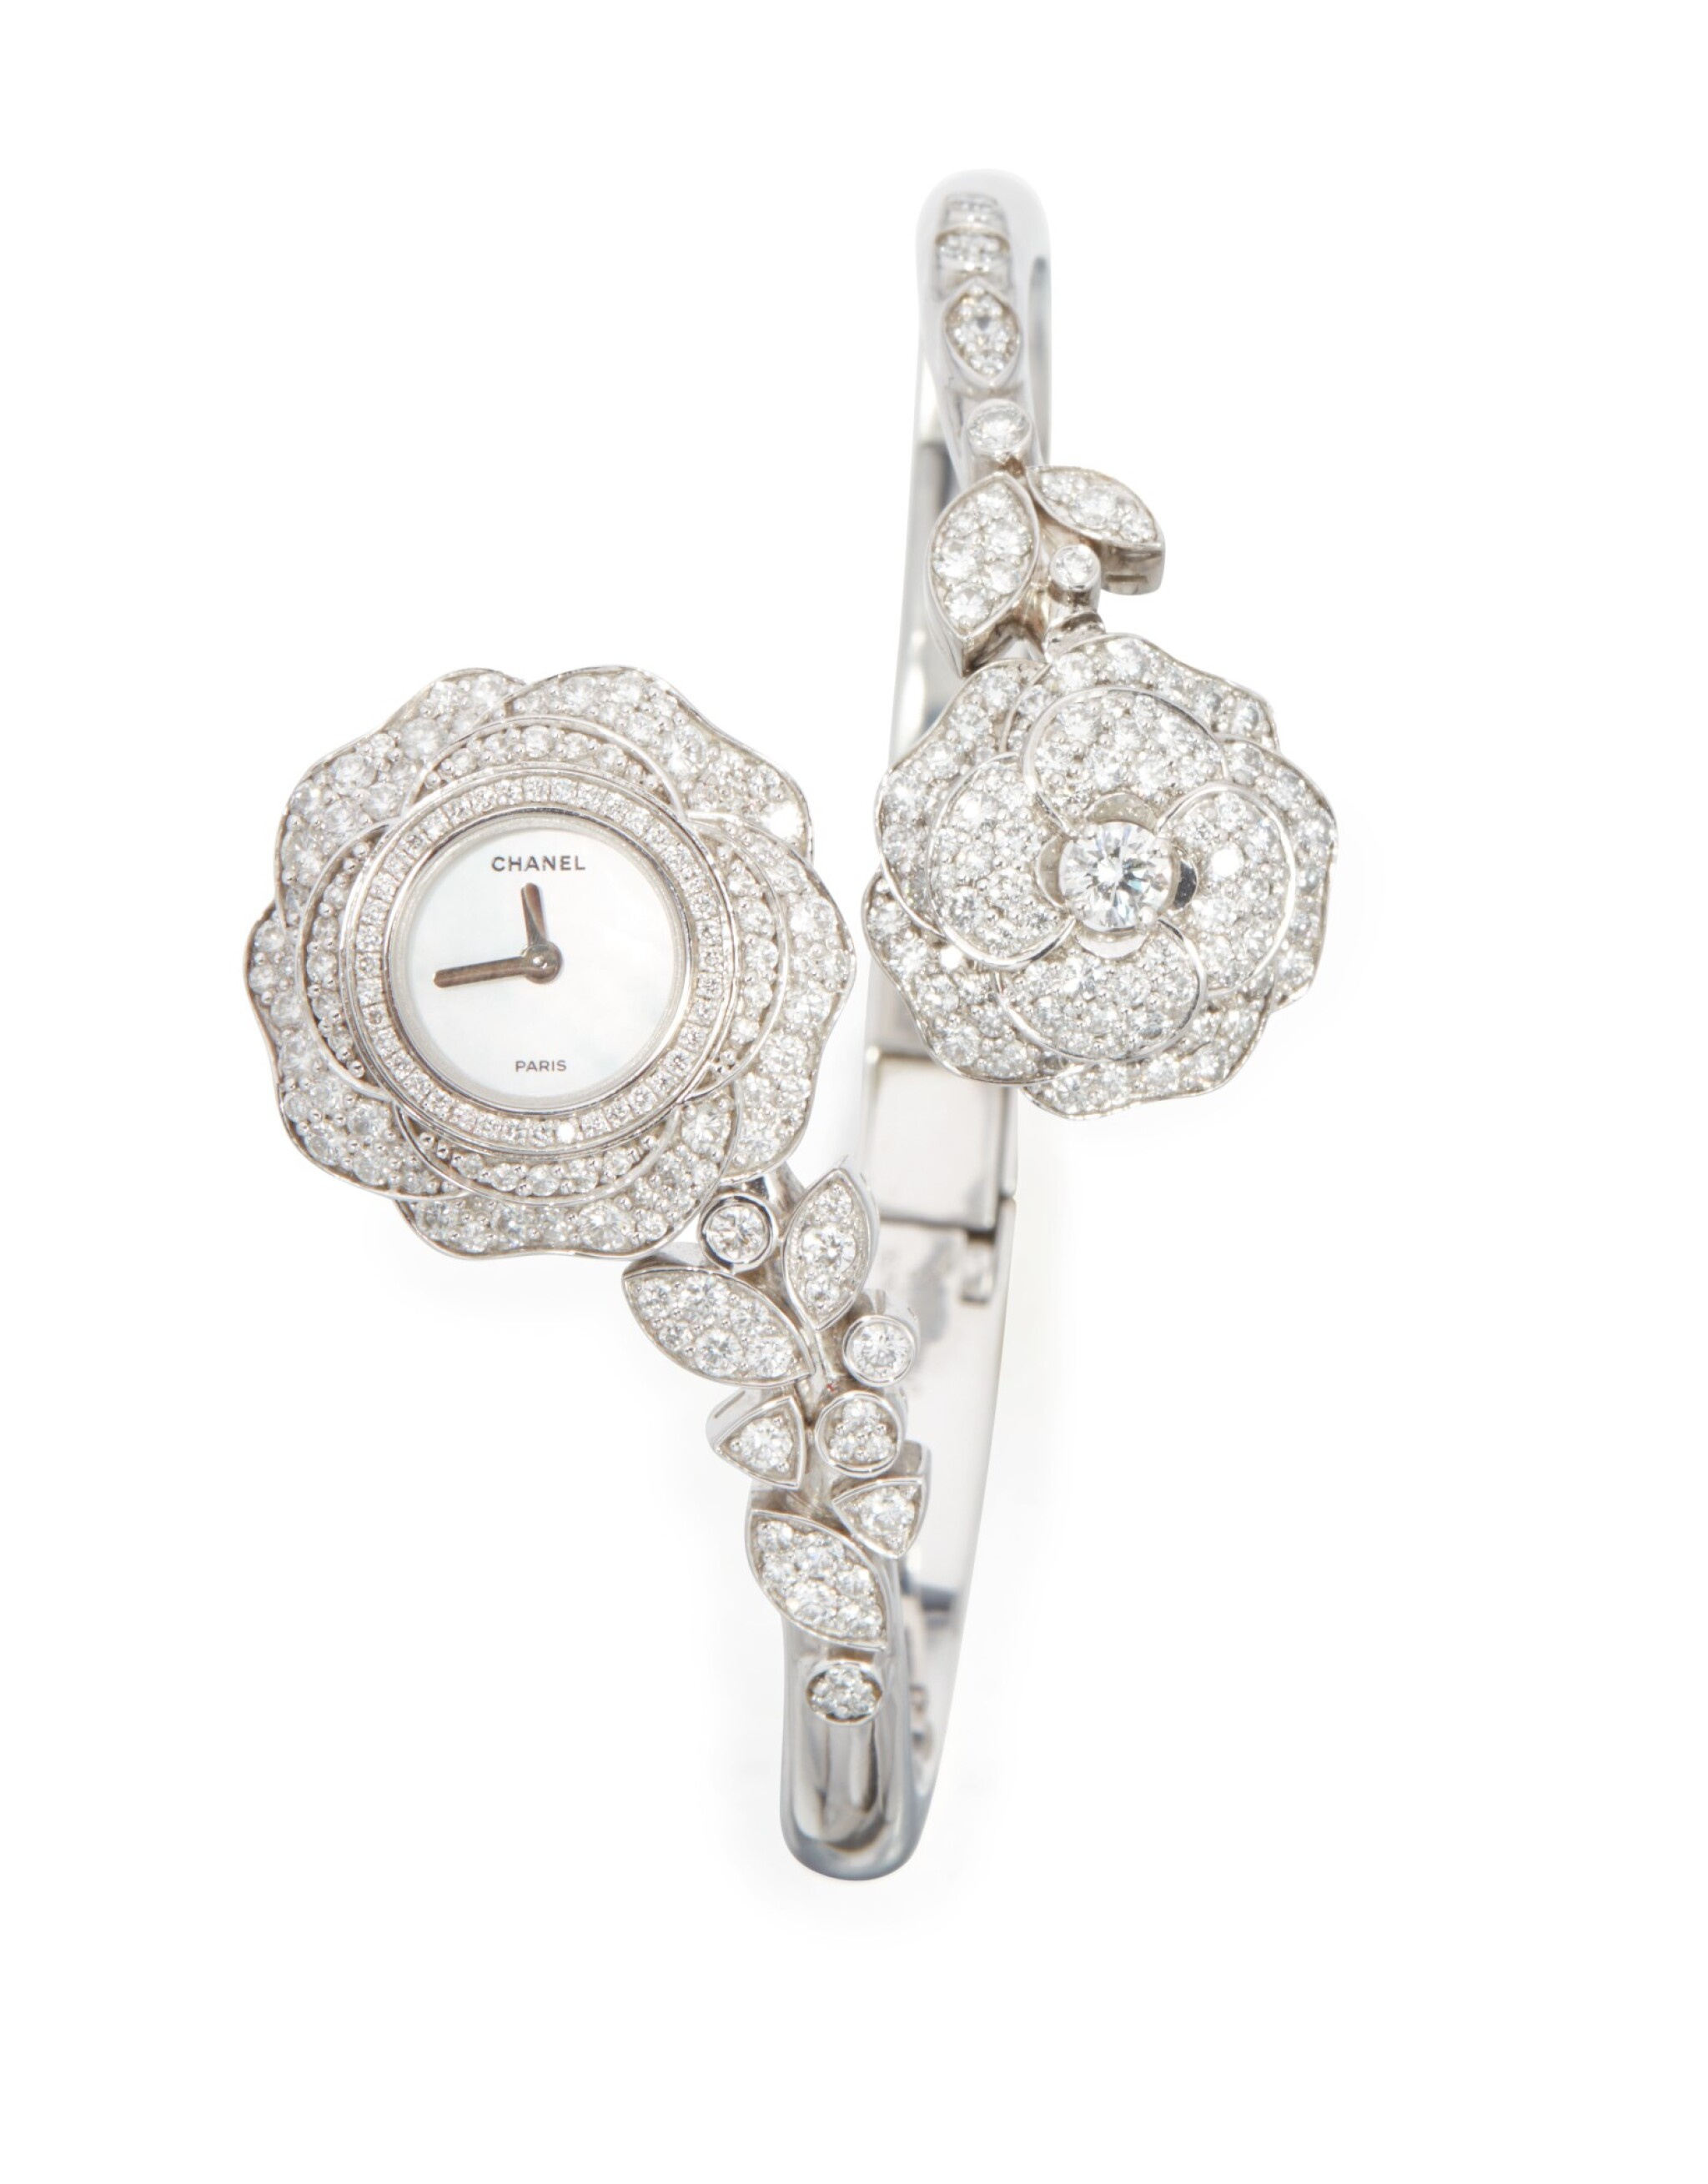 View 1 of Lot 39. DIAMOND AND MOTHER-OF-PEARL 'CAMELLIA' BRACELET-WATCH, CHANEL, FRANCE.